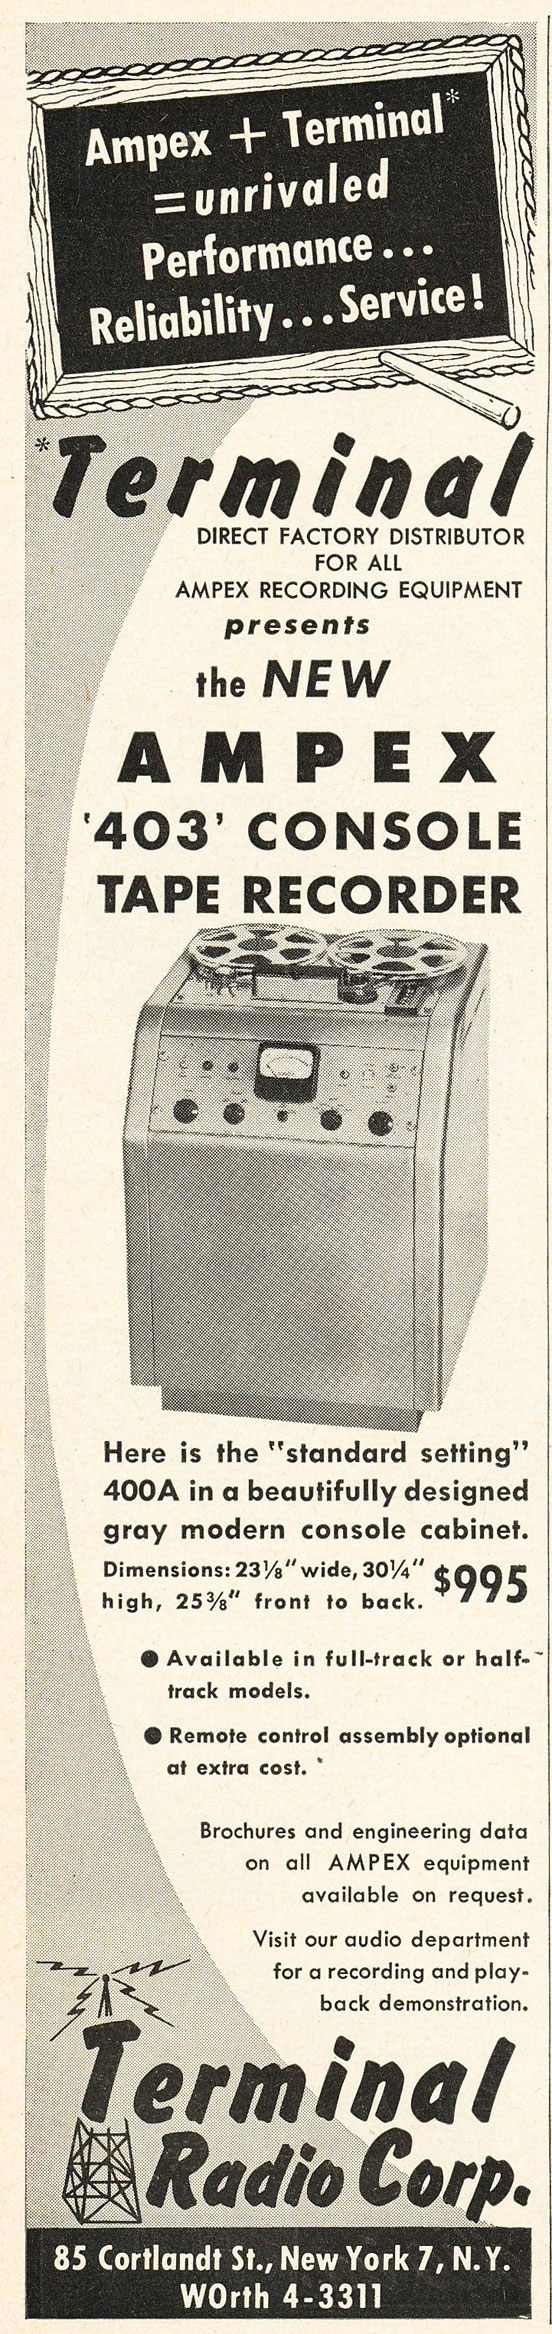 1952 ad for the Ampex 403 console professional reel to reel tape recorder  in Reel2ReelTexas.com's vintage recording collection